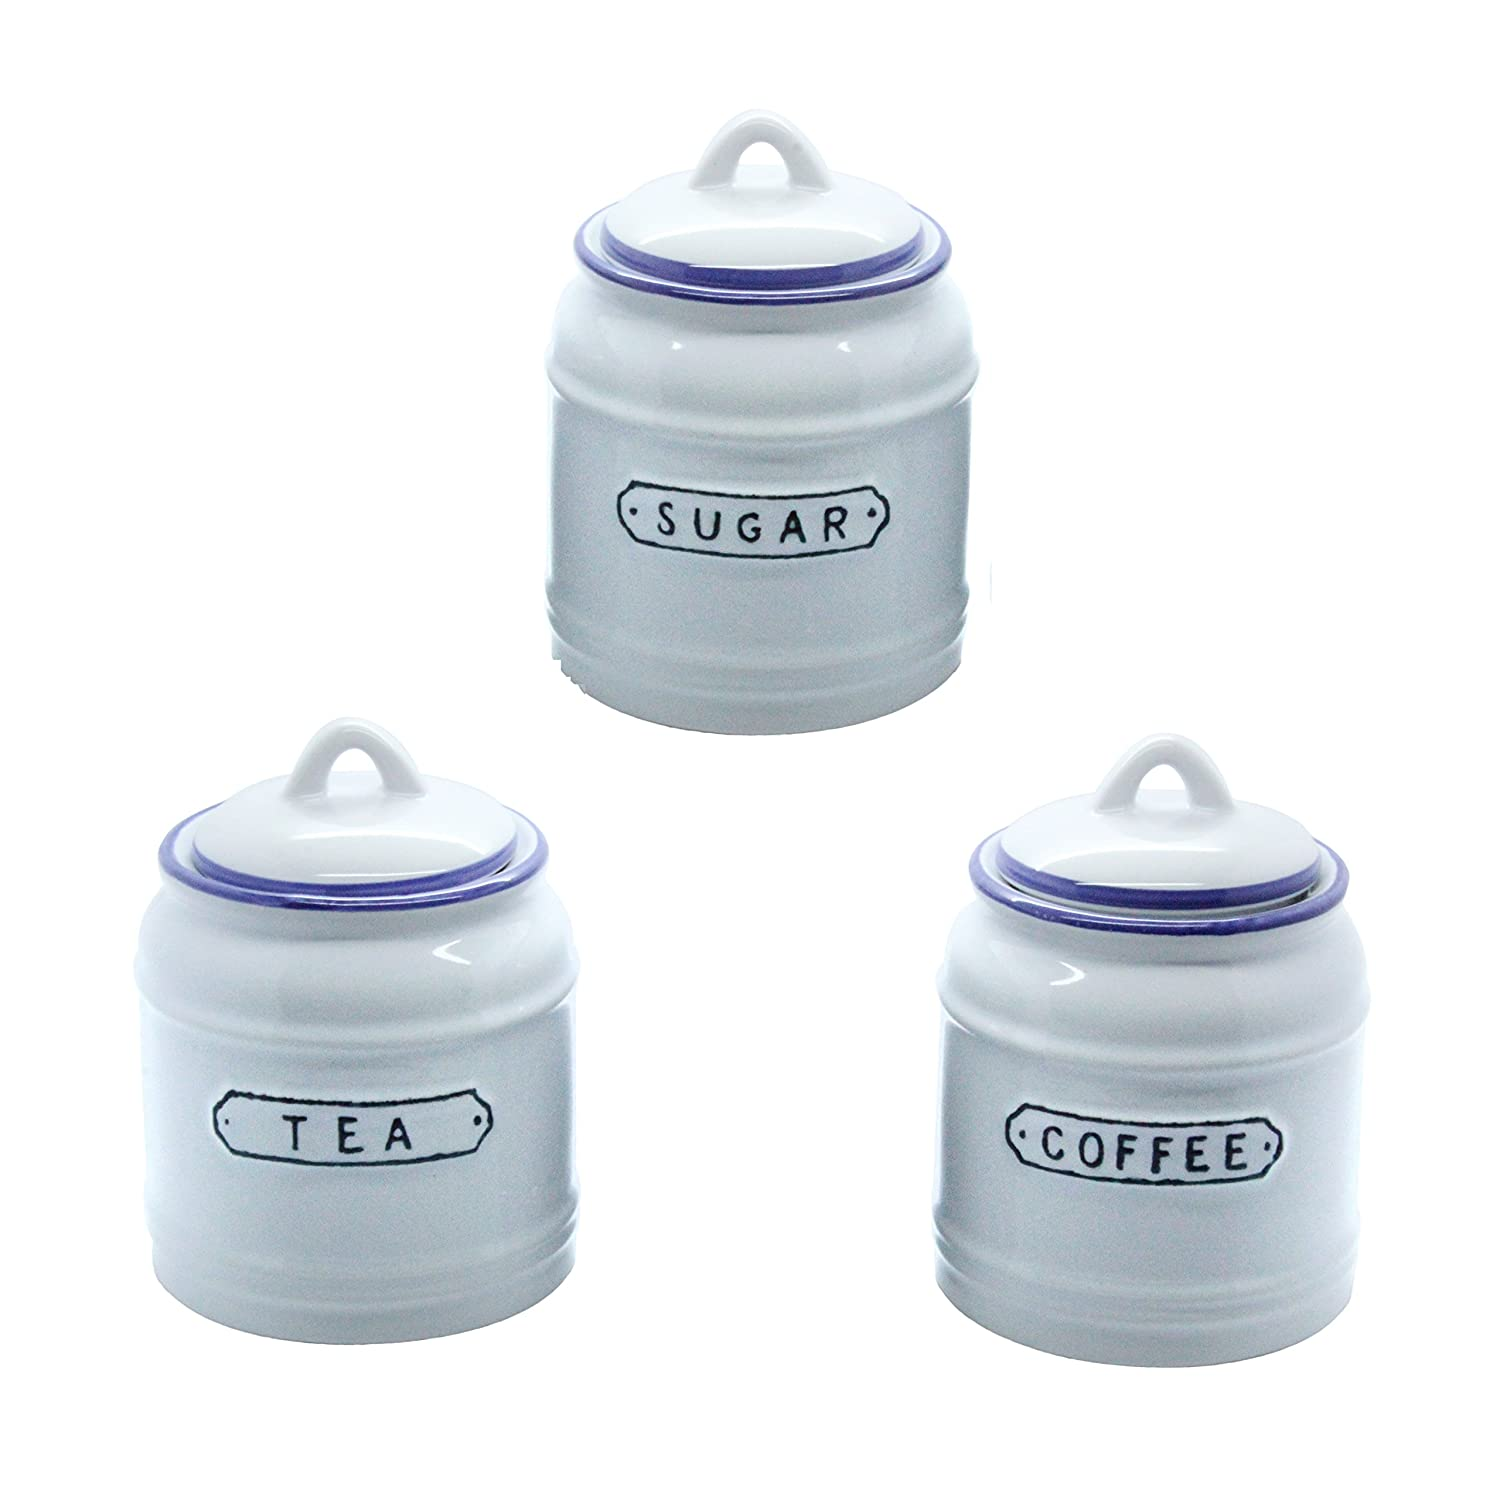 Retro Tea, Coffee and Sugar Canister Set in Vintage Blue and White ...